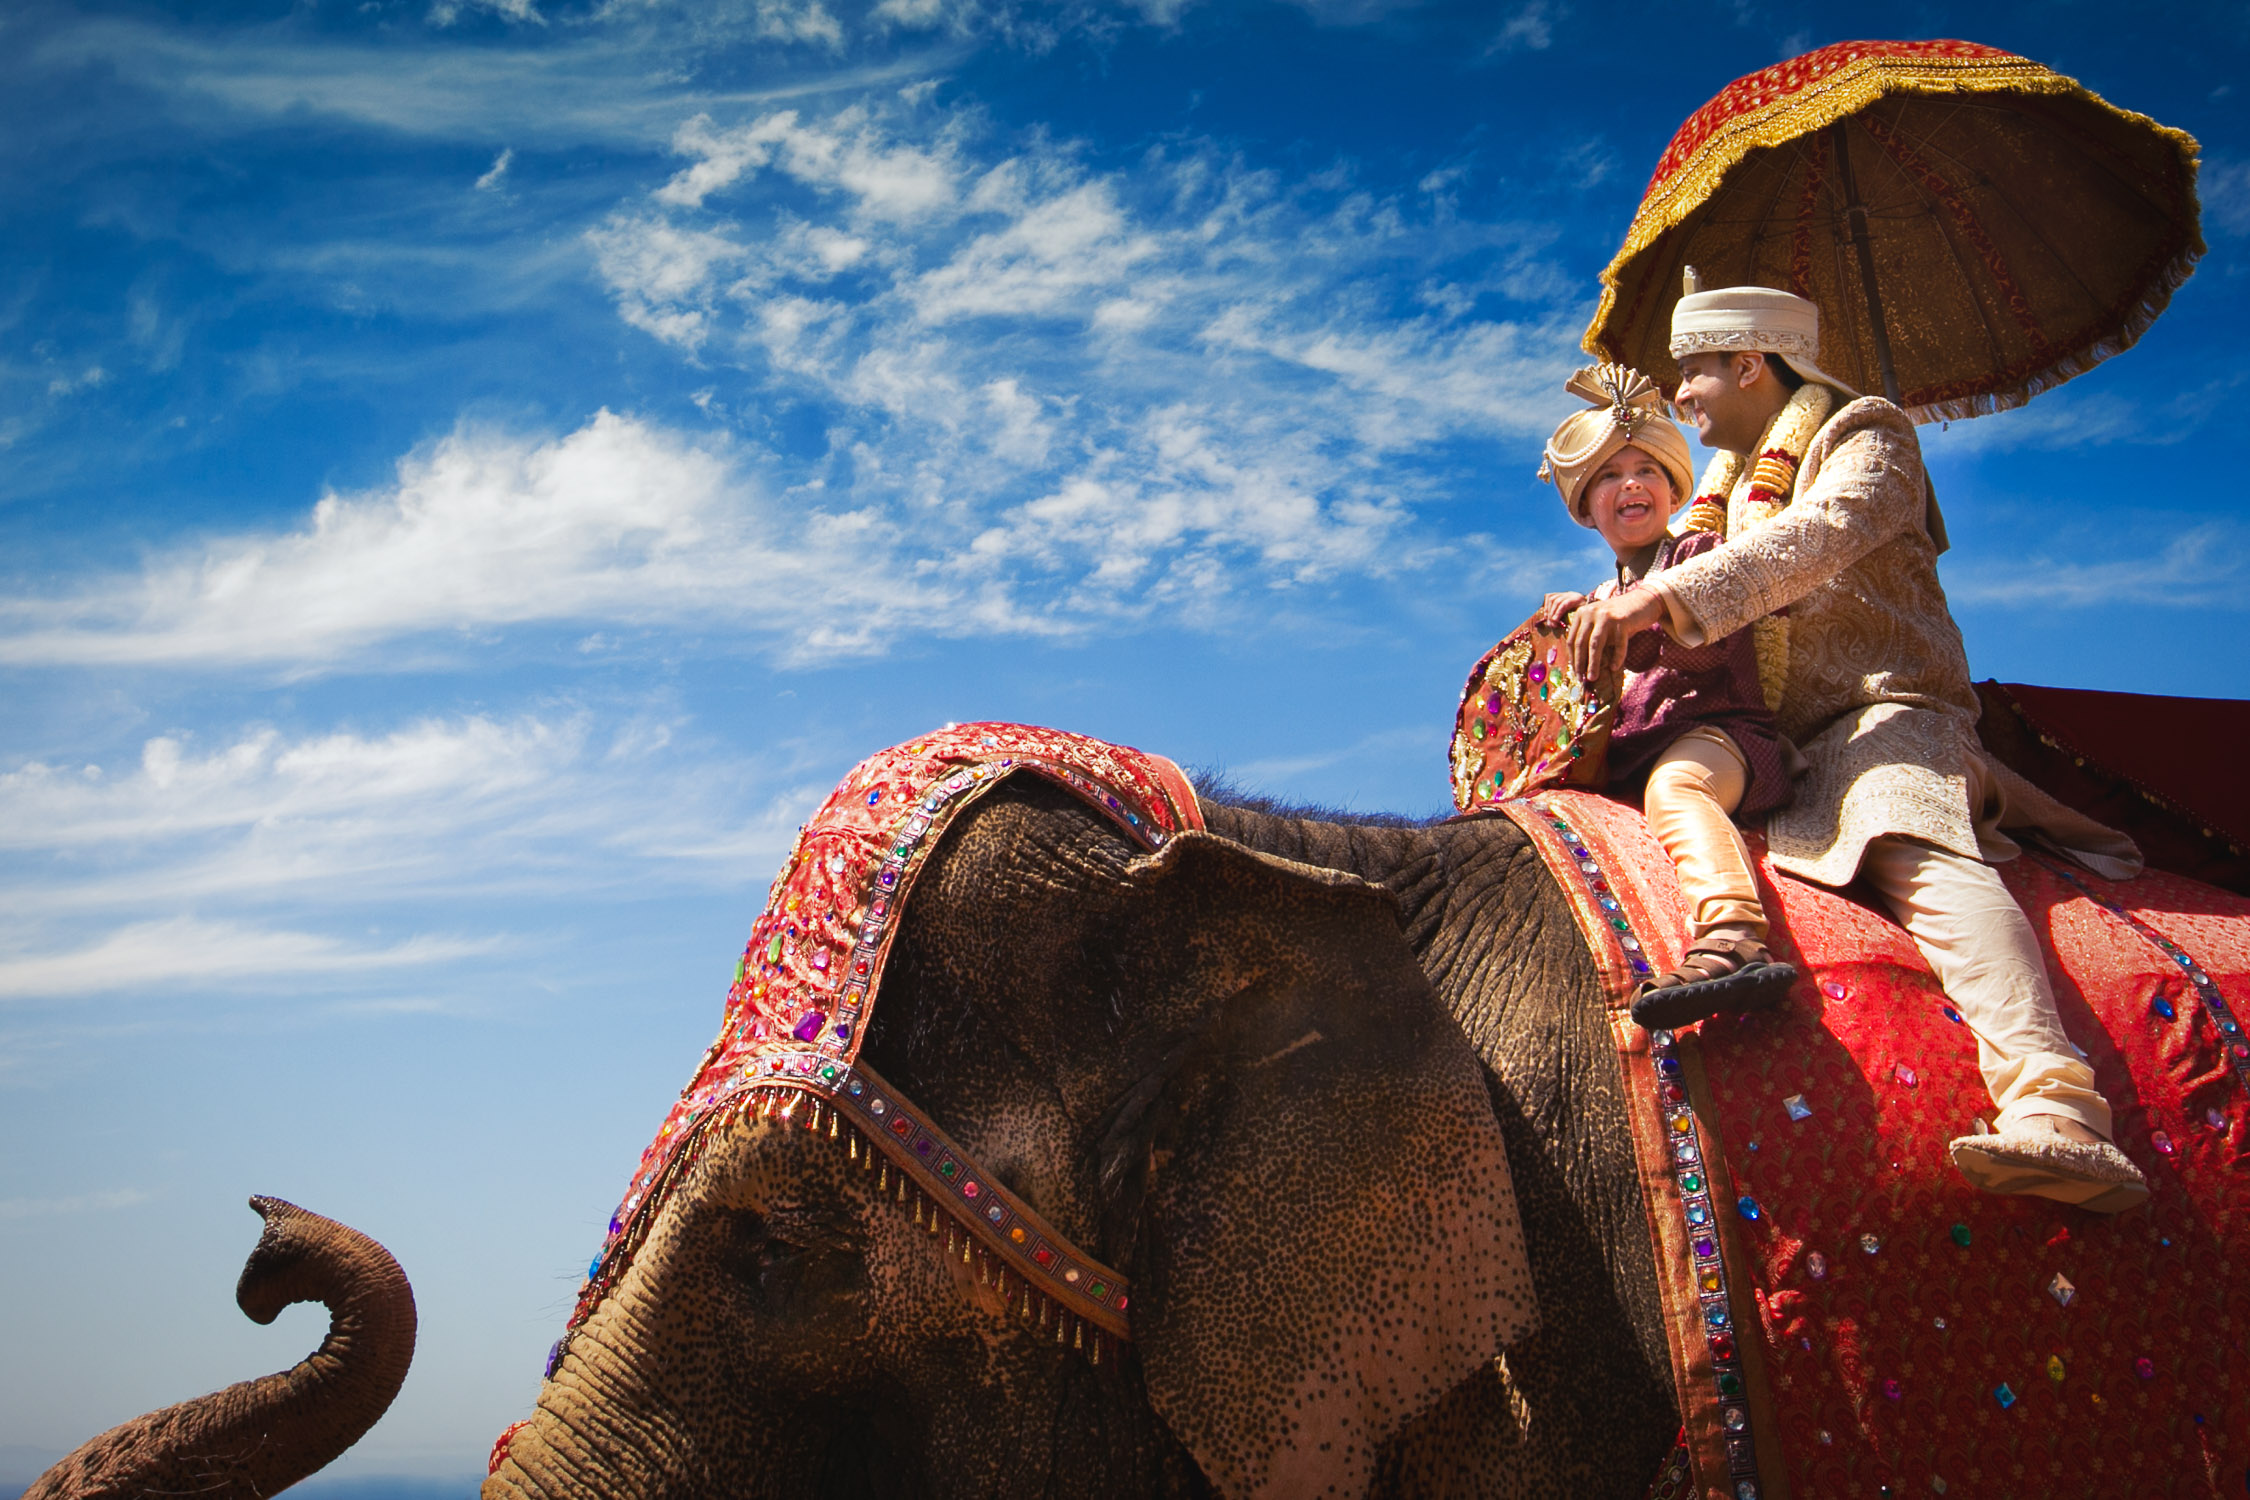 Pelican Hill Indian Wedding Photo of Groom on Elephant